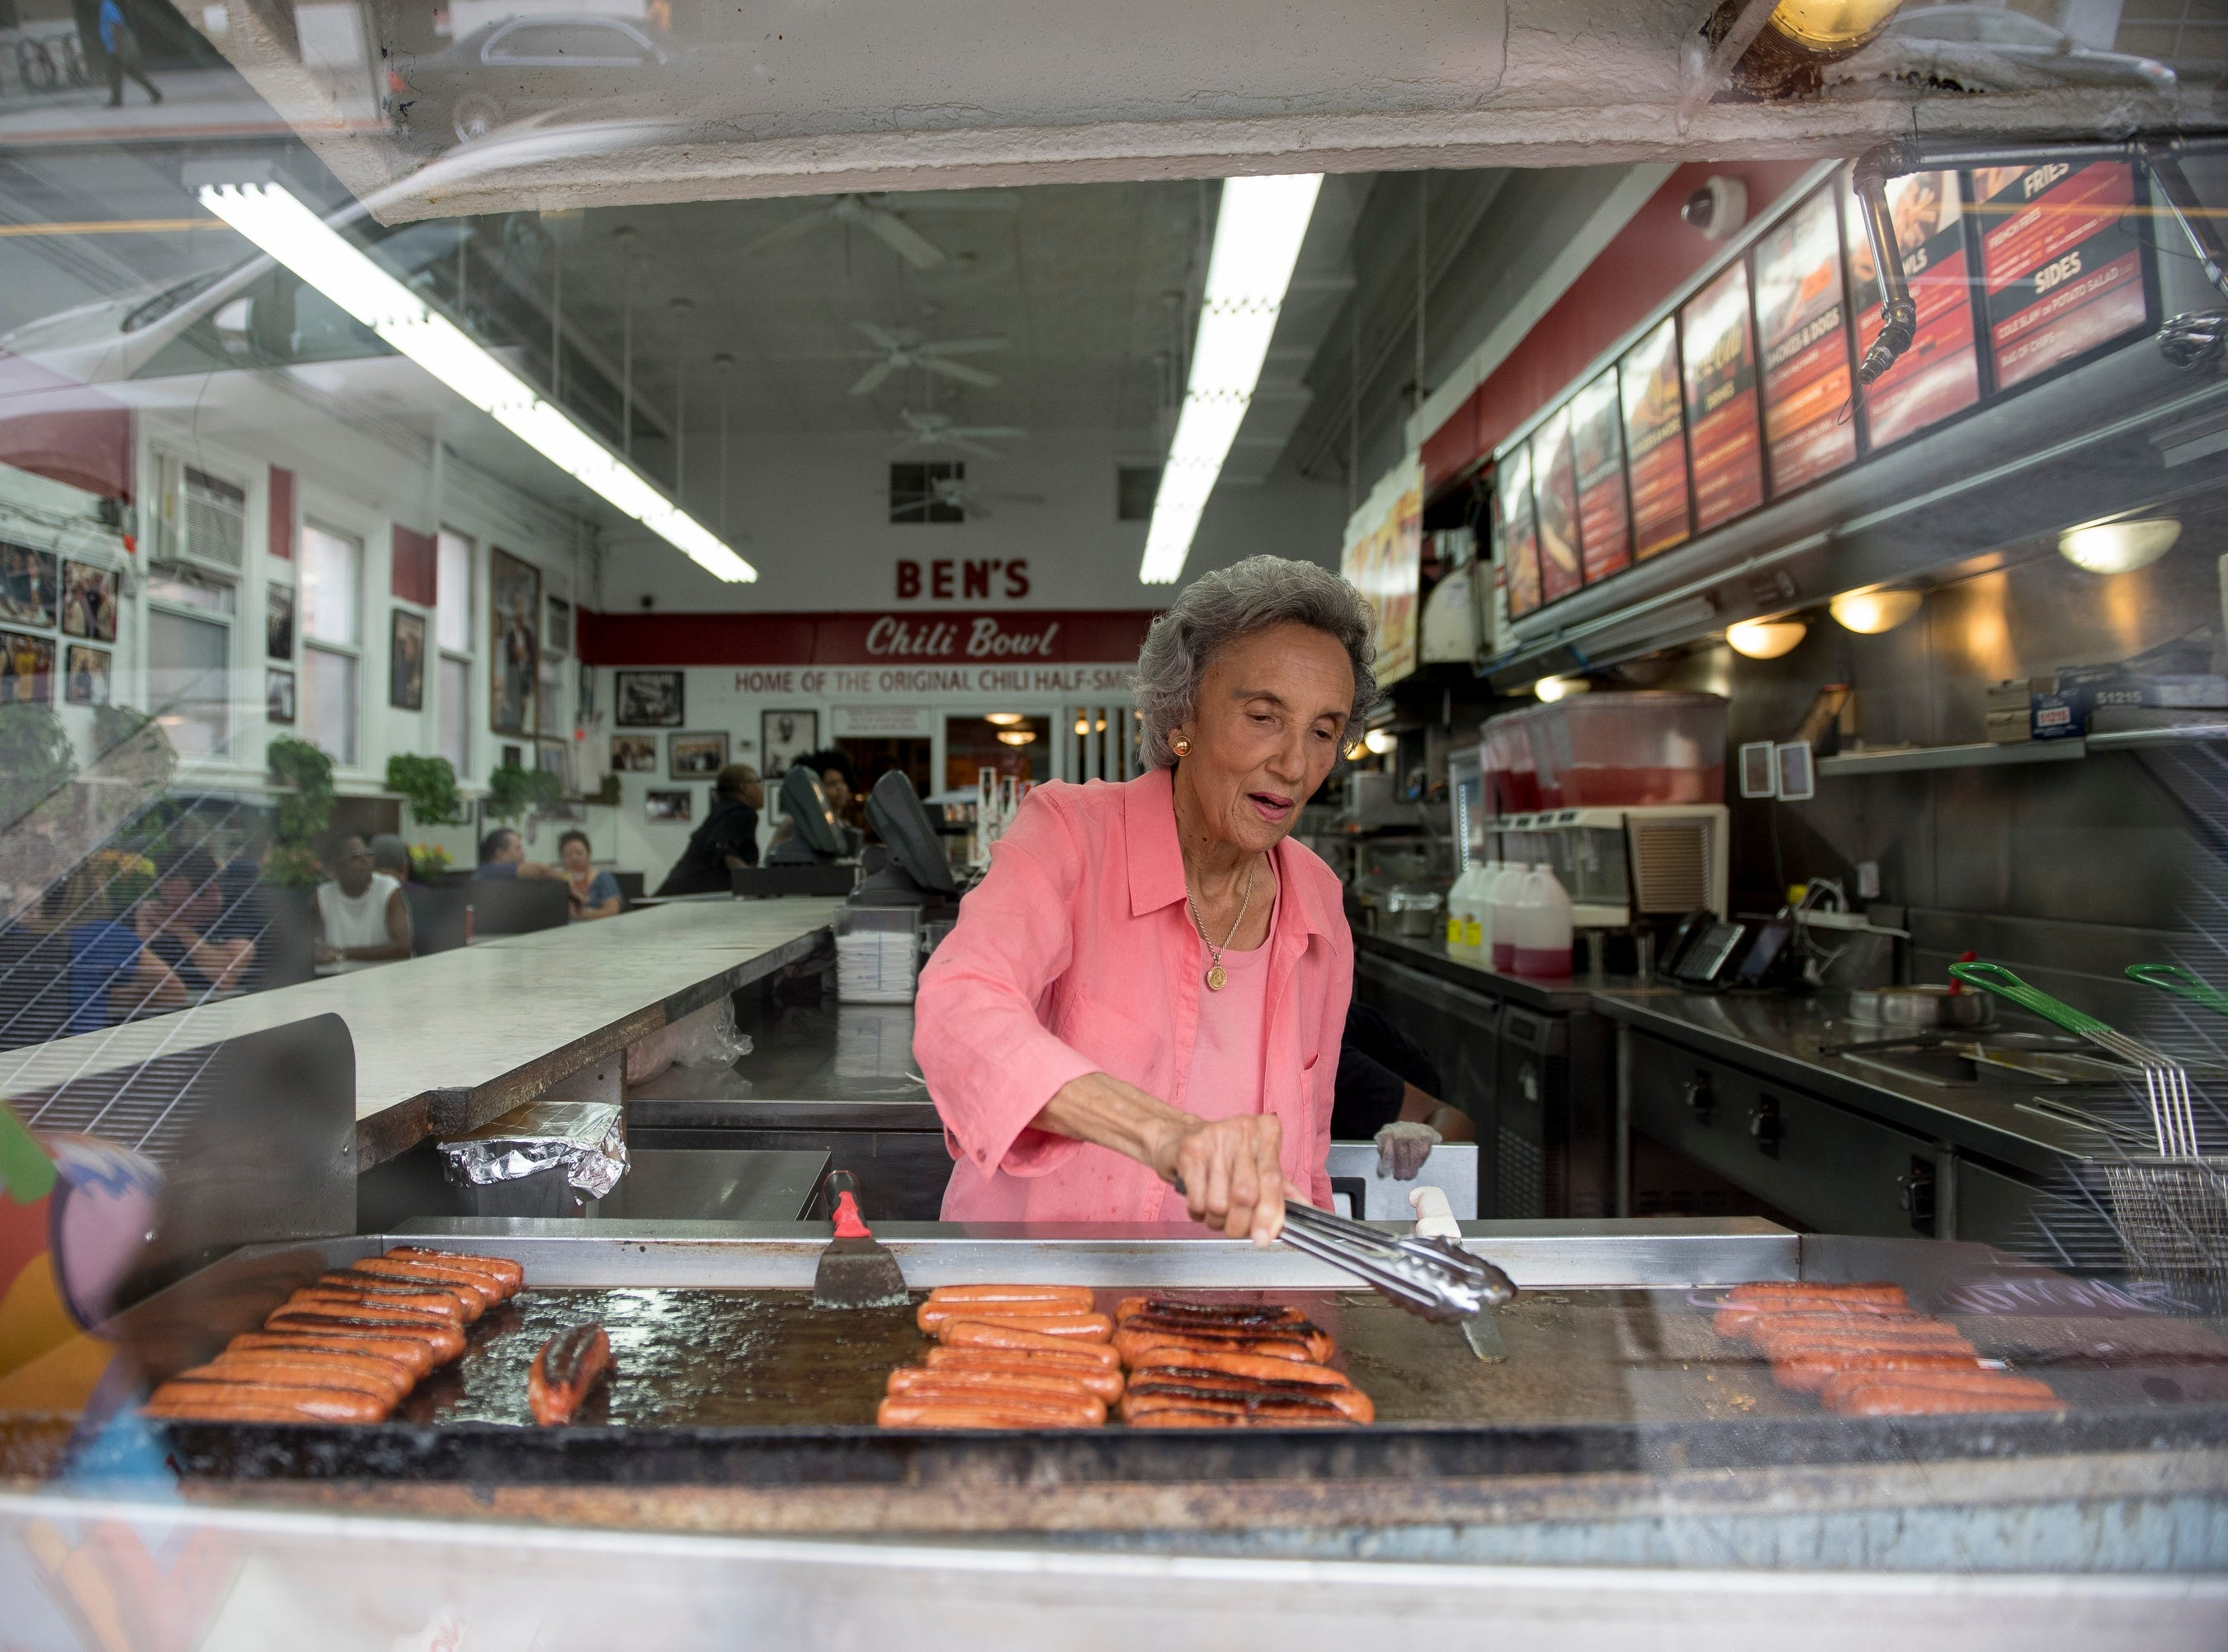 Virginia Ali, 85, owner and co-founder of Ben's Chili Bowl, rotates hotdogs on the grill to be served to customers. Virginia and her late husband Ben opened their doors in August, 1958 and continue to grow their business.